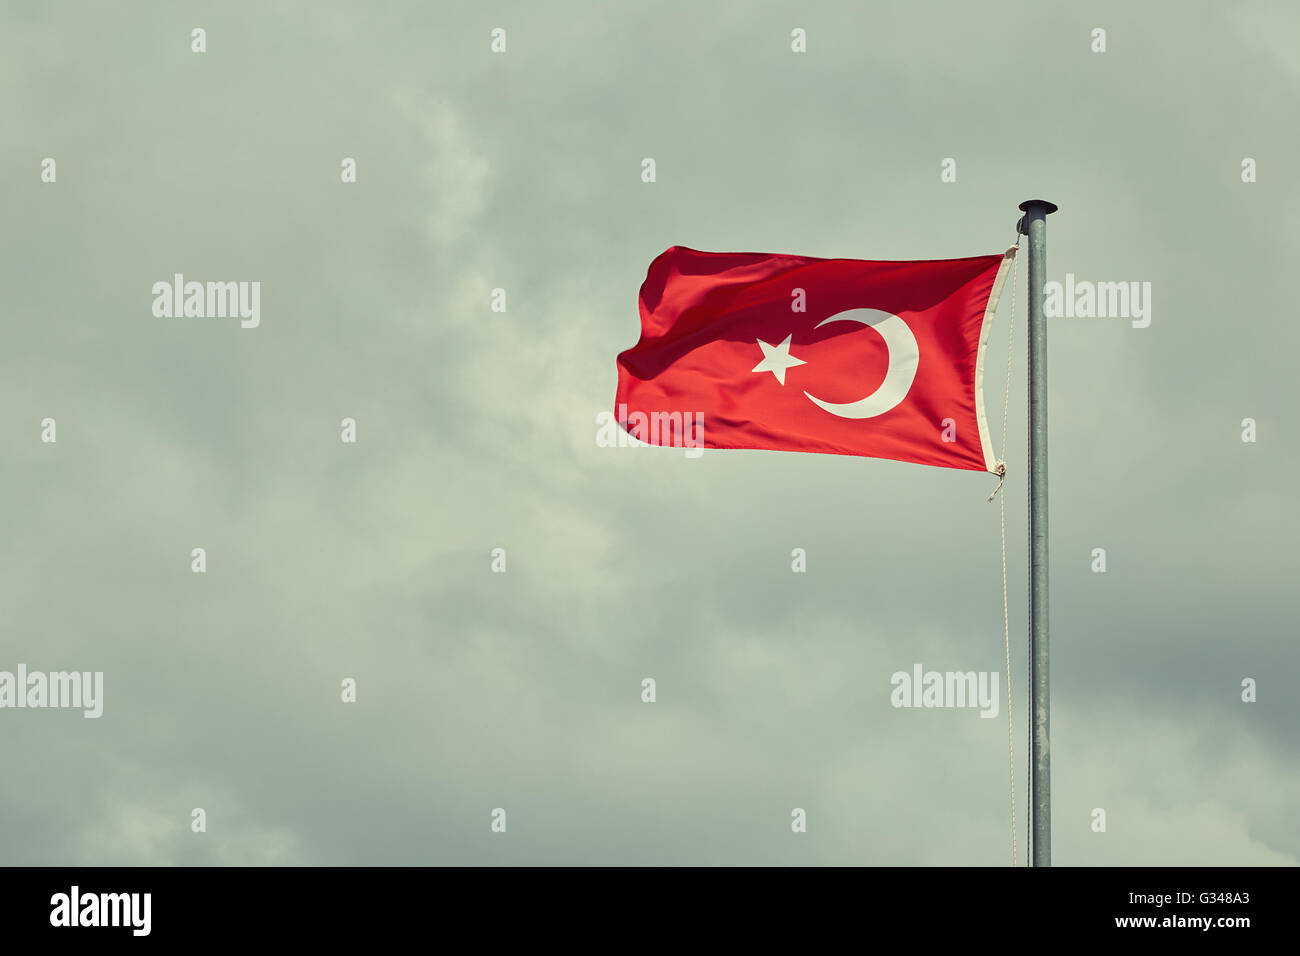 Turkish flag blowing in the wind. - Stock Image